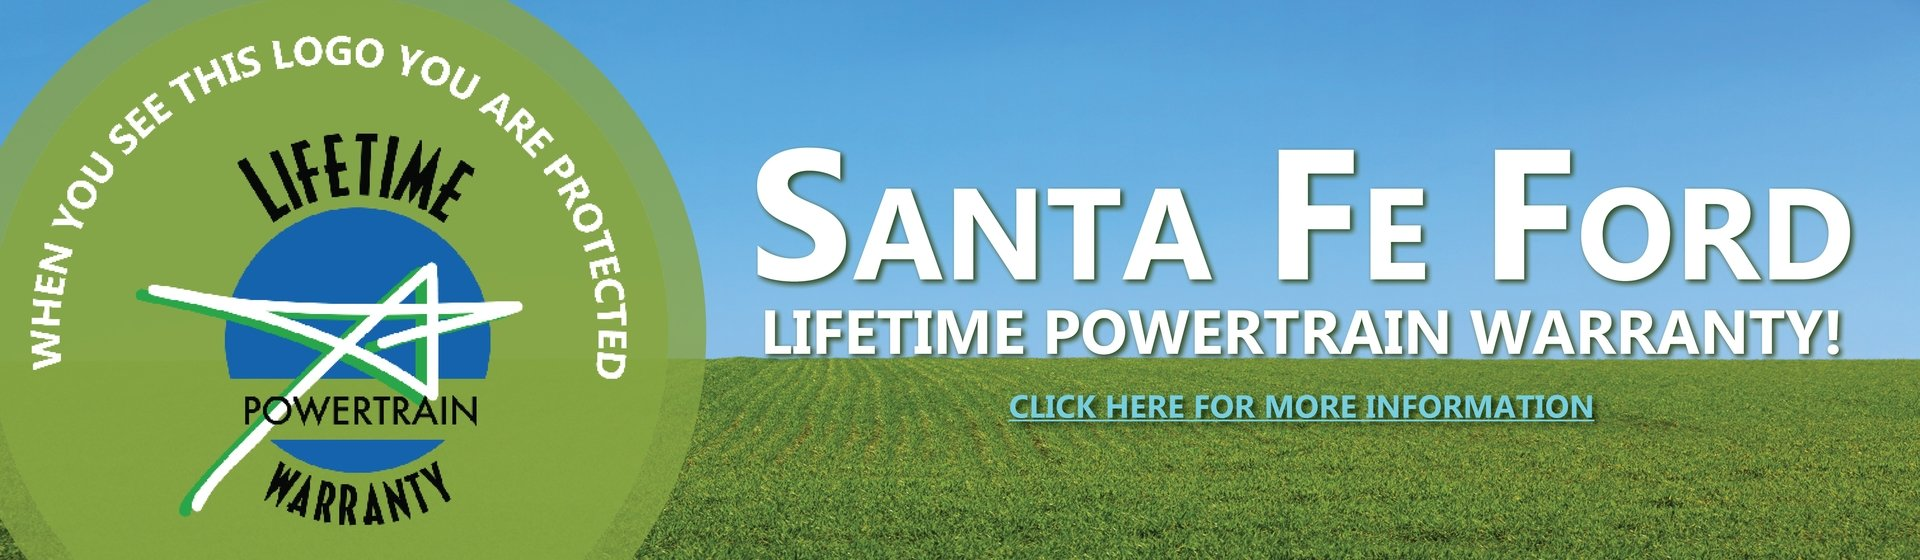 Santa Fe Ford Used Cars Gainesville FL Ford Dealership